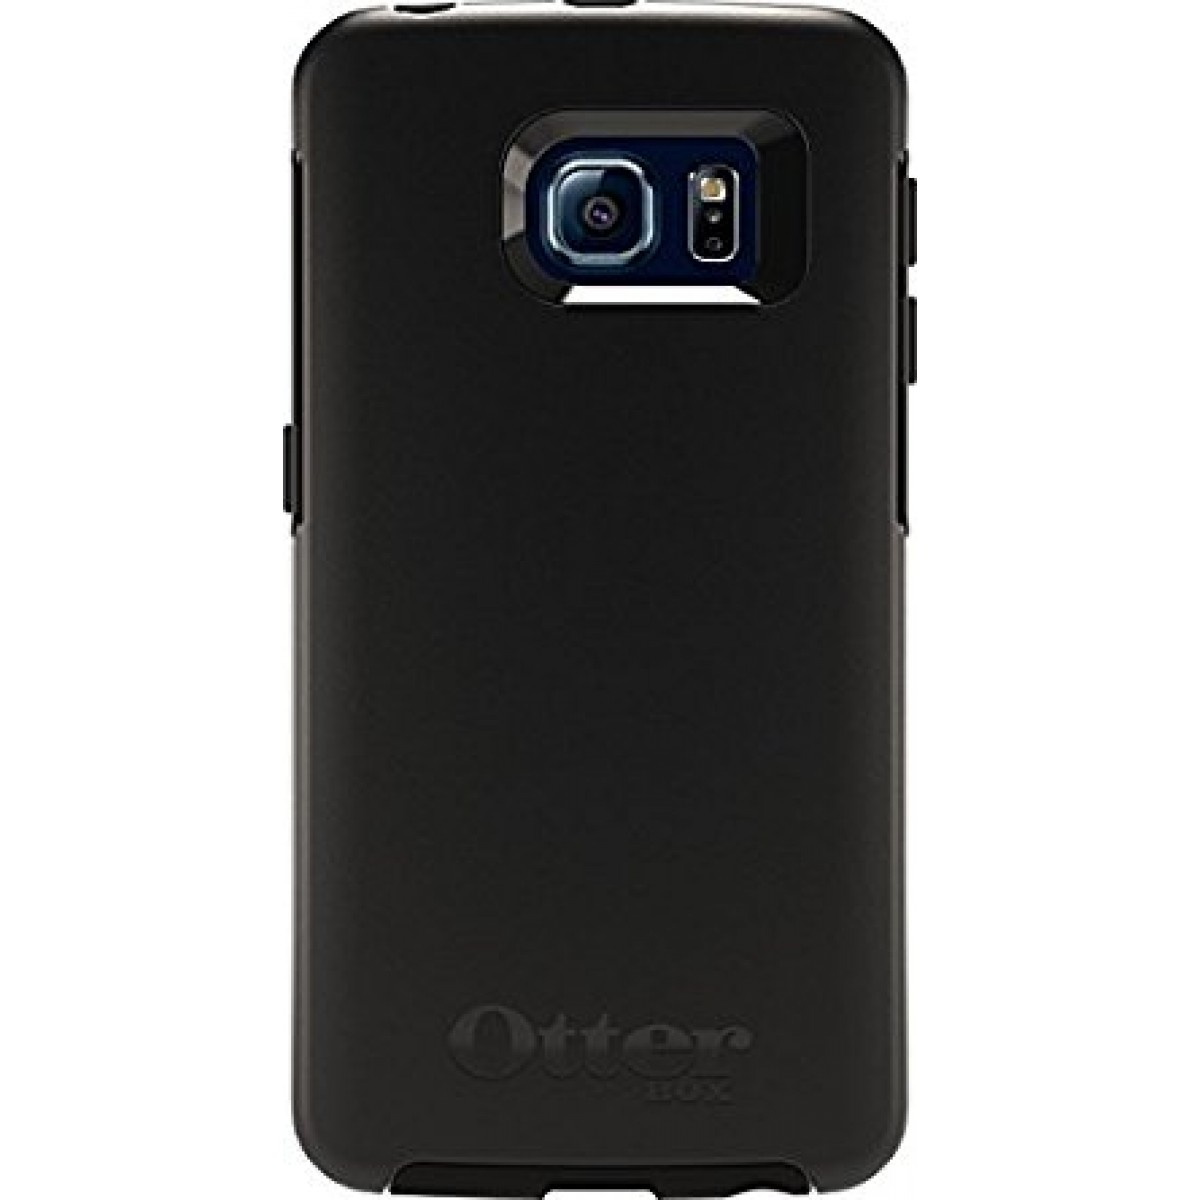 premium selection 4a321 104f3 Otterbox Symmetry Series Case for Samsung Galaxy S6 Edge - Frustration  Retail Packaging - Black